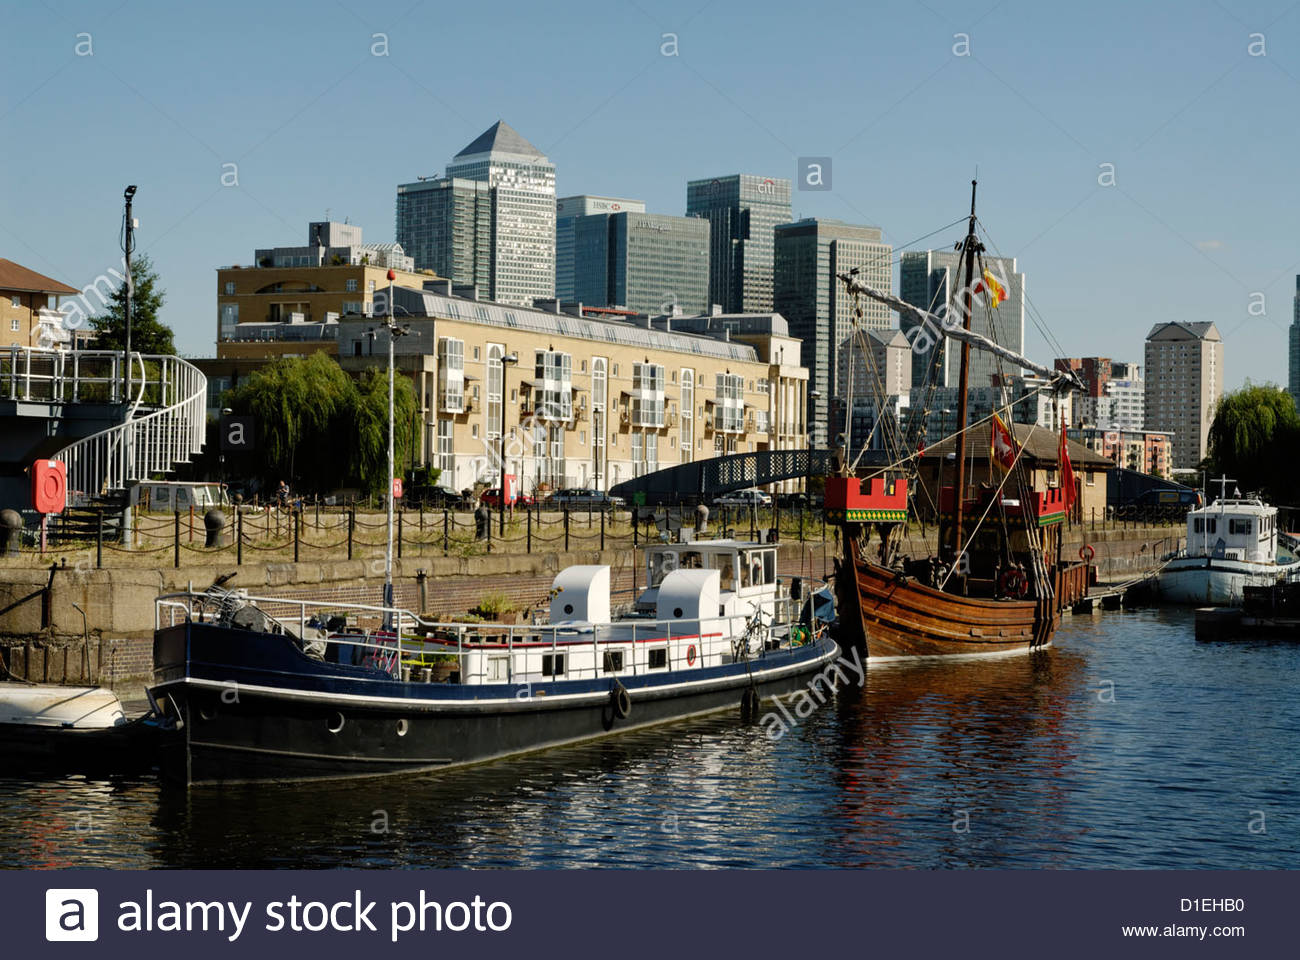 housesboats on Greenland Dock in London Docklands - Stock Image